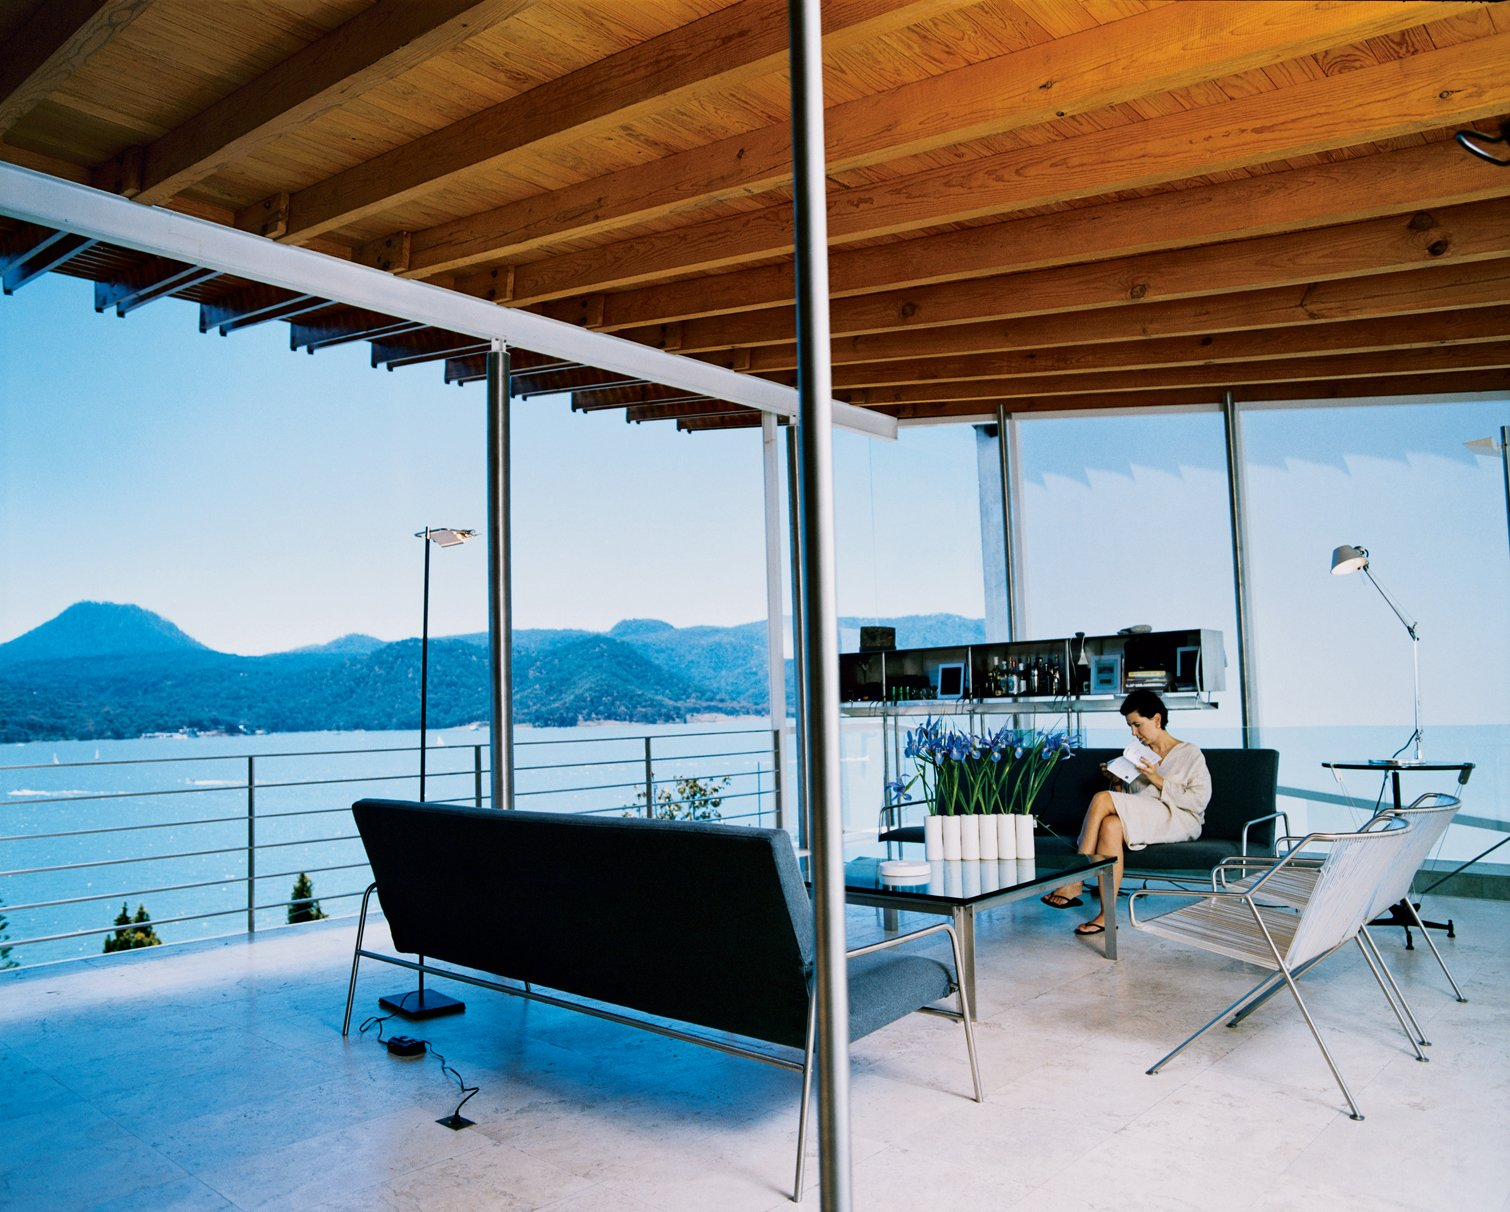 Loredana Dall' Amico reads in the living room, where all the seating was designed by her husband. The floating stainless steel unit behind her is also his design and contains a state-of-the-art stereo system.  Modern Stereo Setups by William Lamb from Reflections on a Lake